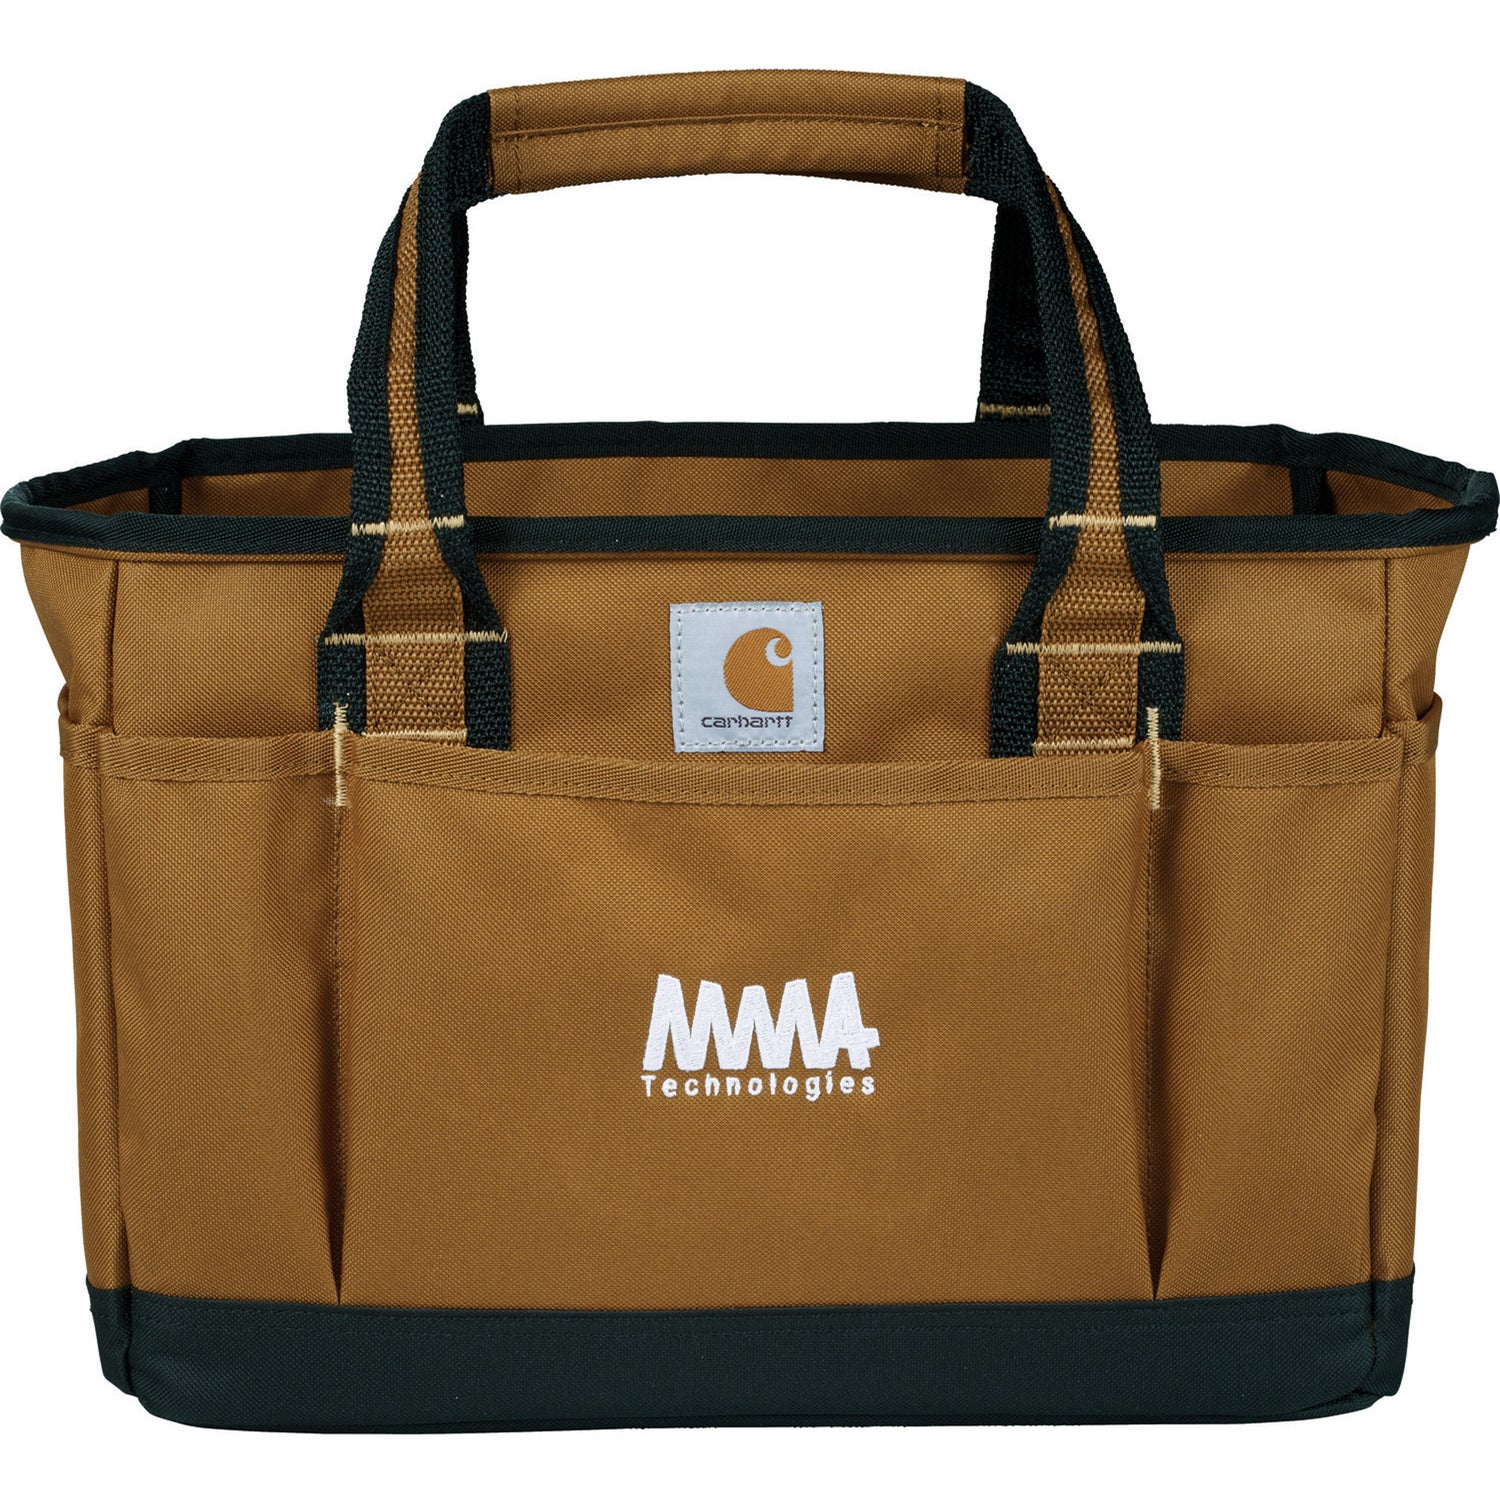 Brown Carhartt Signature Utility Tool Tote Bag For Advertising